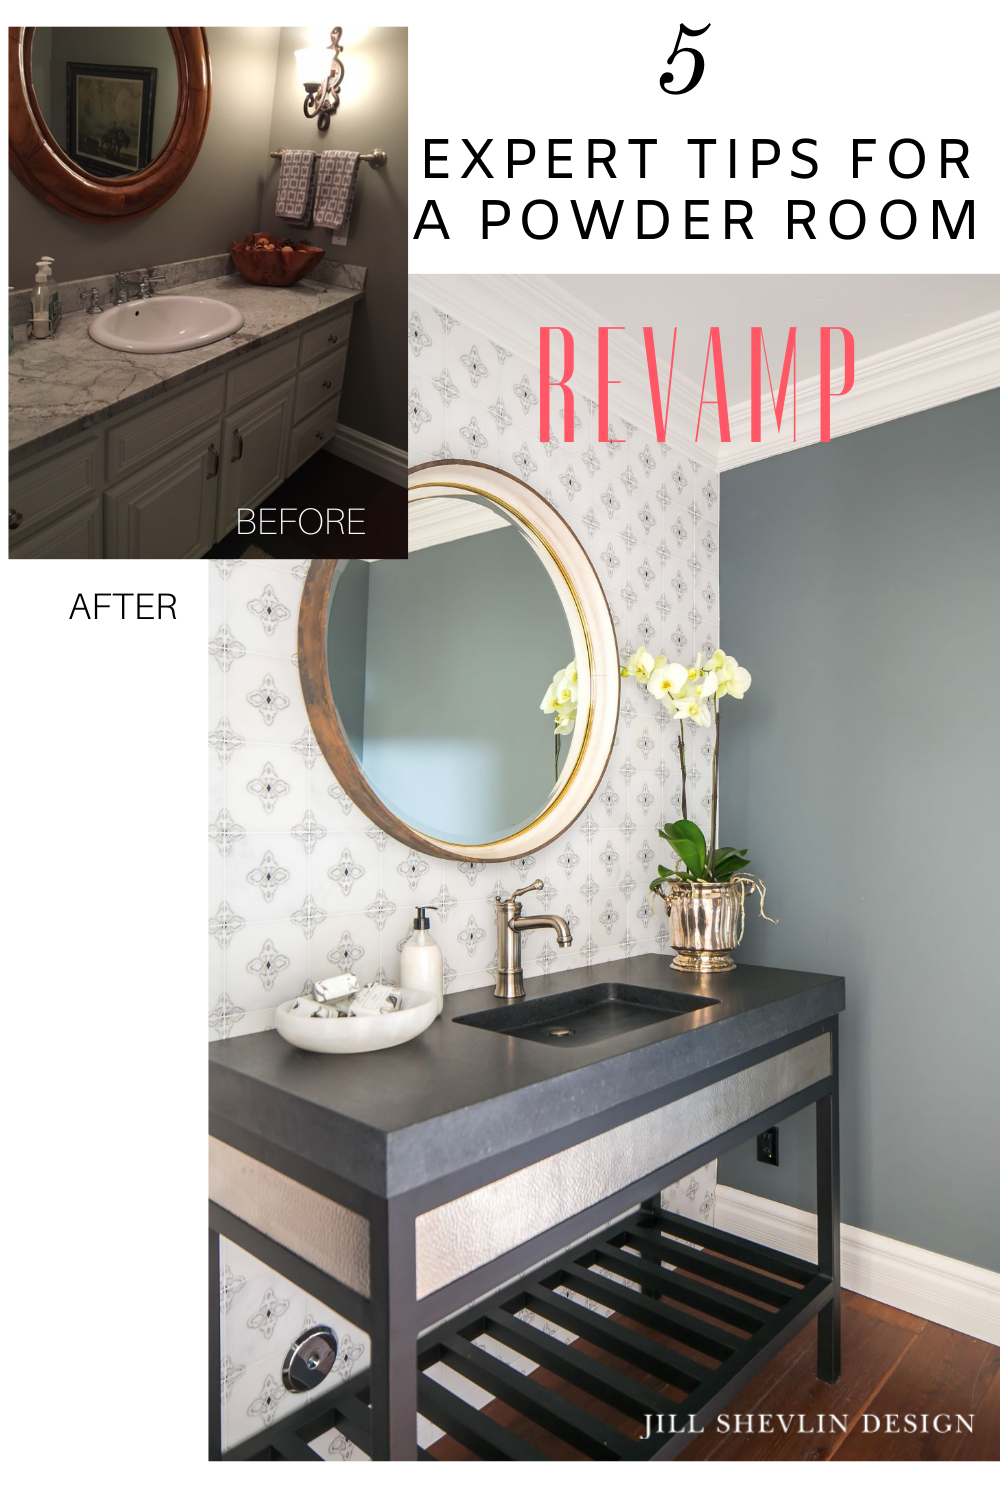 5 Expert Tips for a Powder Room Revamp